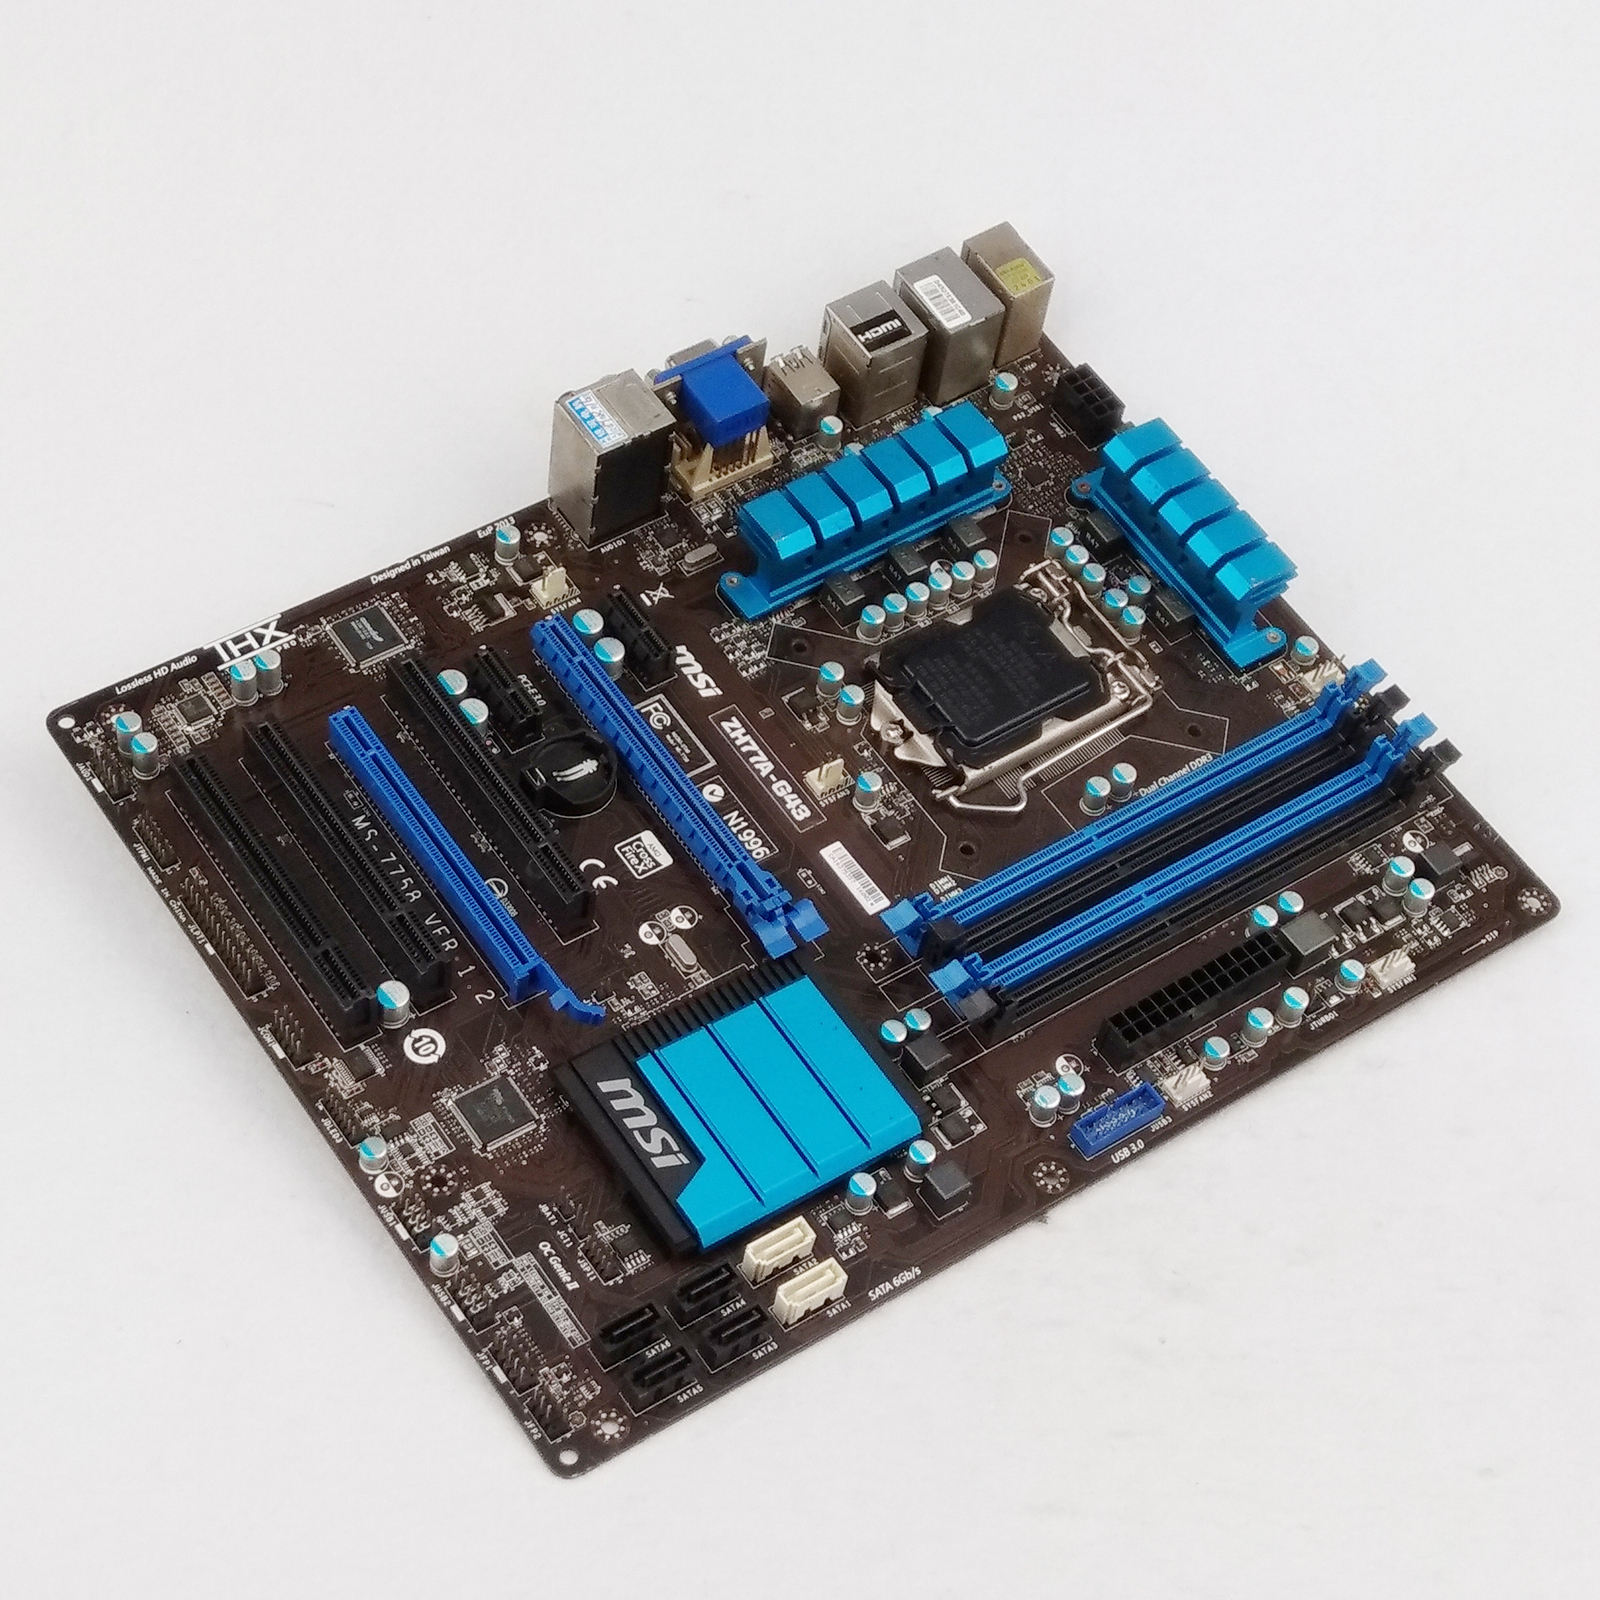 Used MSI ZH77A-G43 Motherboard DDR3 LGA 1155 for I3 I5 I7 CPU 32GB USB3.0 ZH77AG43 B-60042